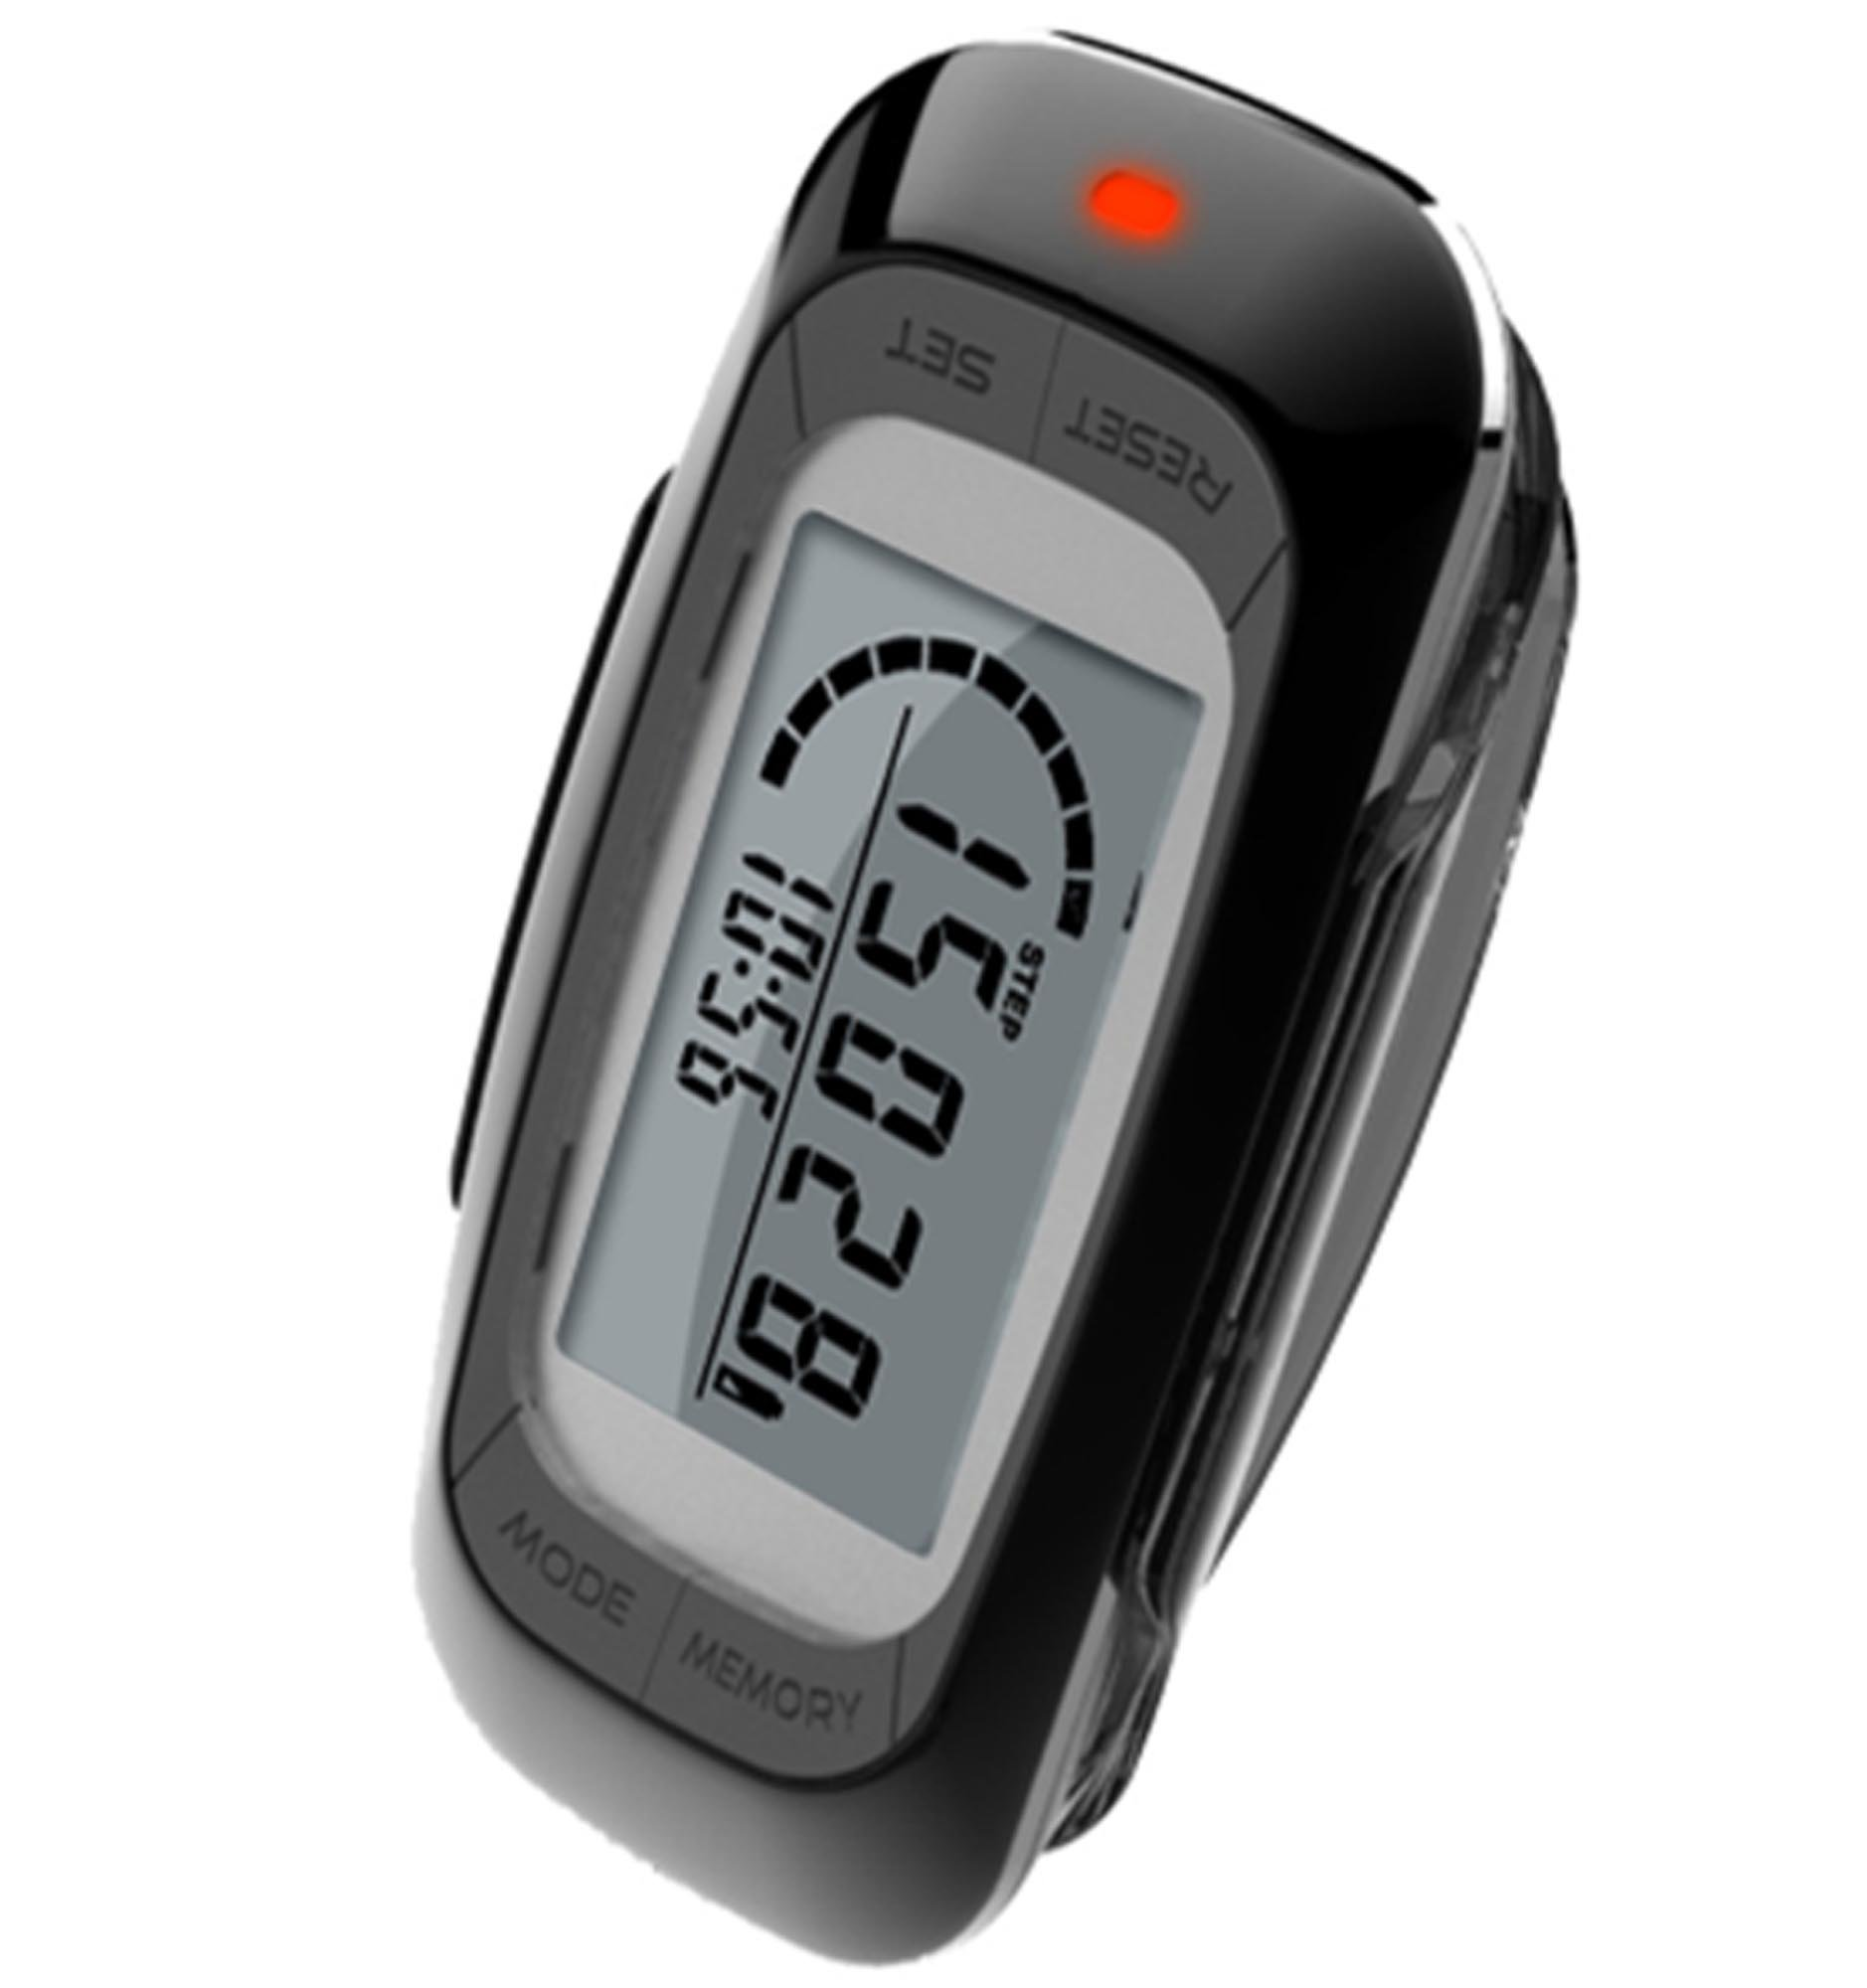 MAYMOC Multifunctional 3D Pedometer with Clip and Strap - Accurate Step Counter, Distance Miles and Km, Calorie Counter,7 Day Memory, Daily Target Progress Monitor, Exercise Time 12 Month Warranty